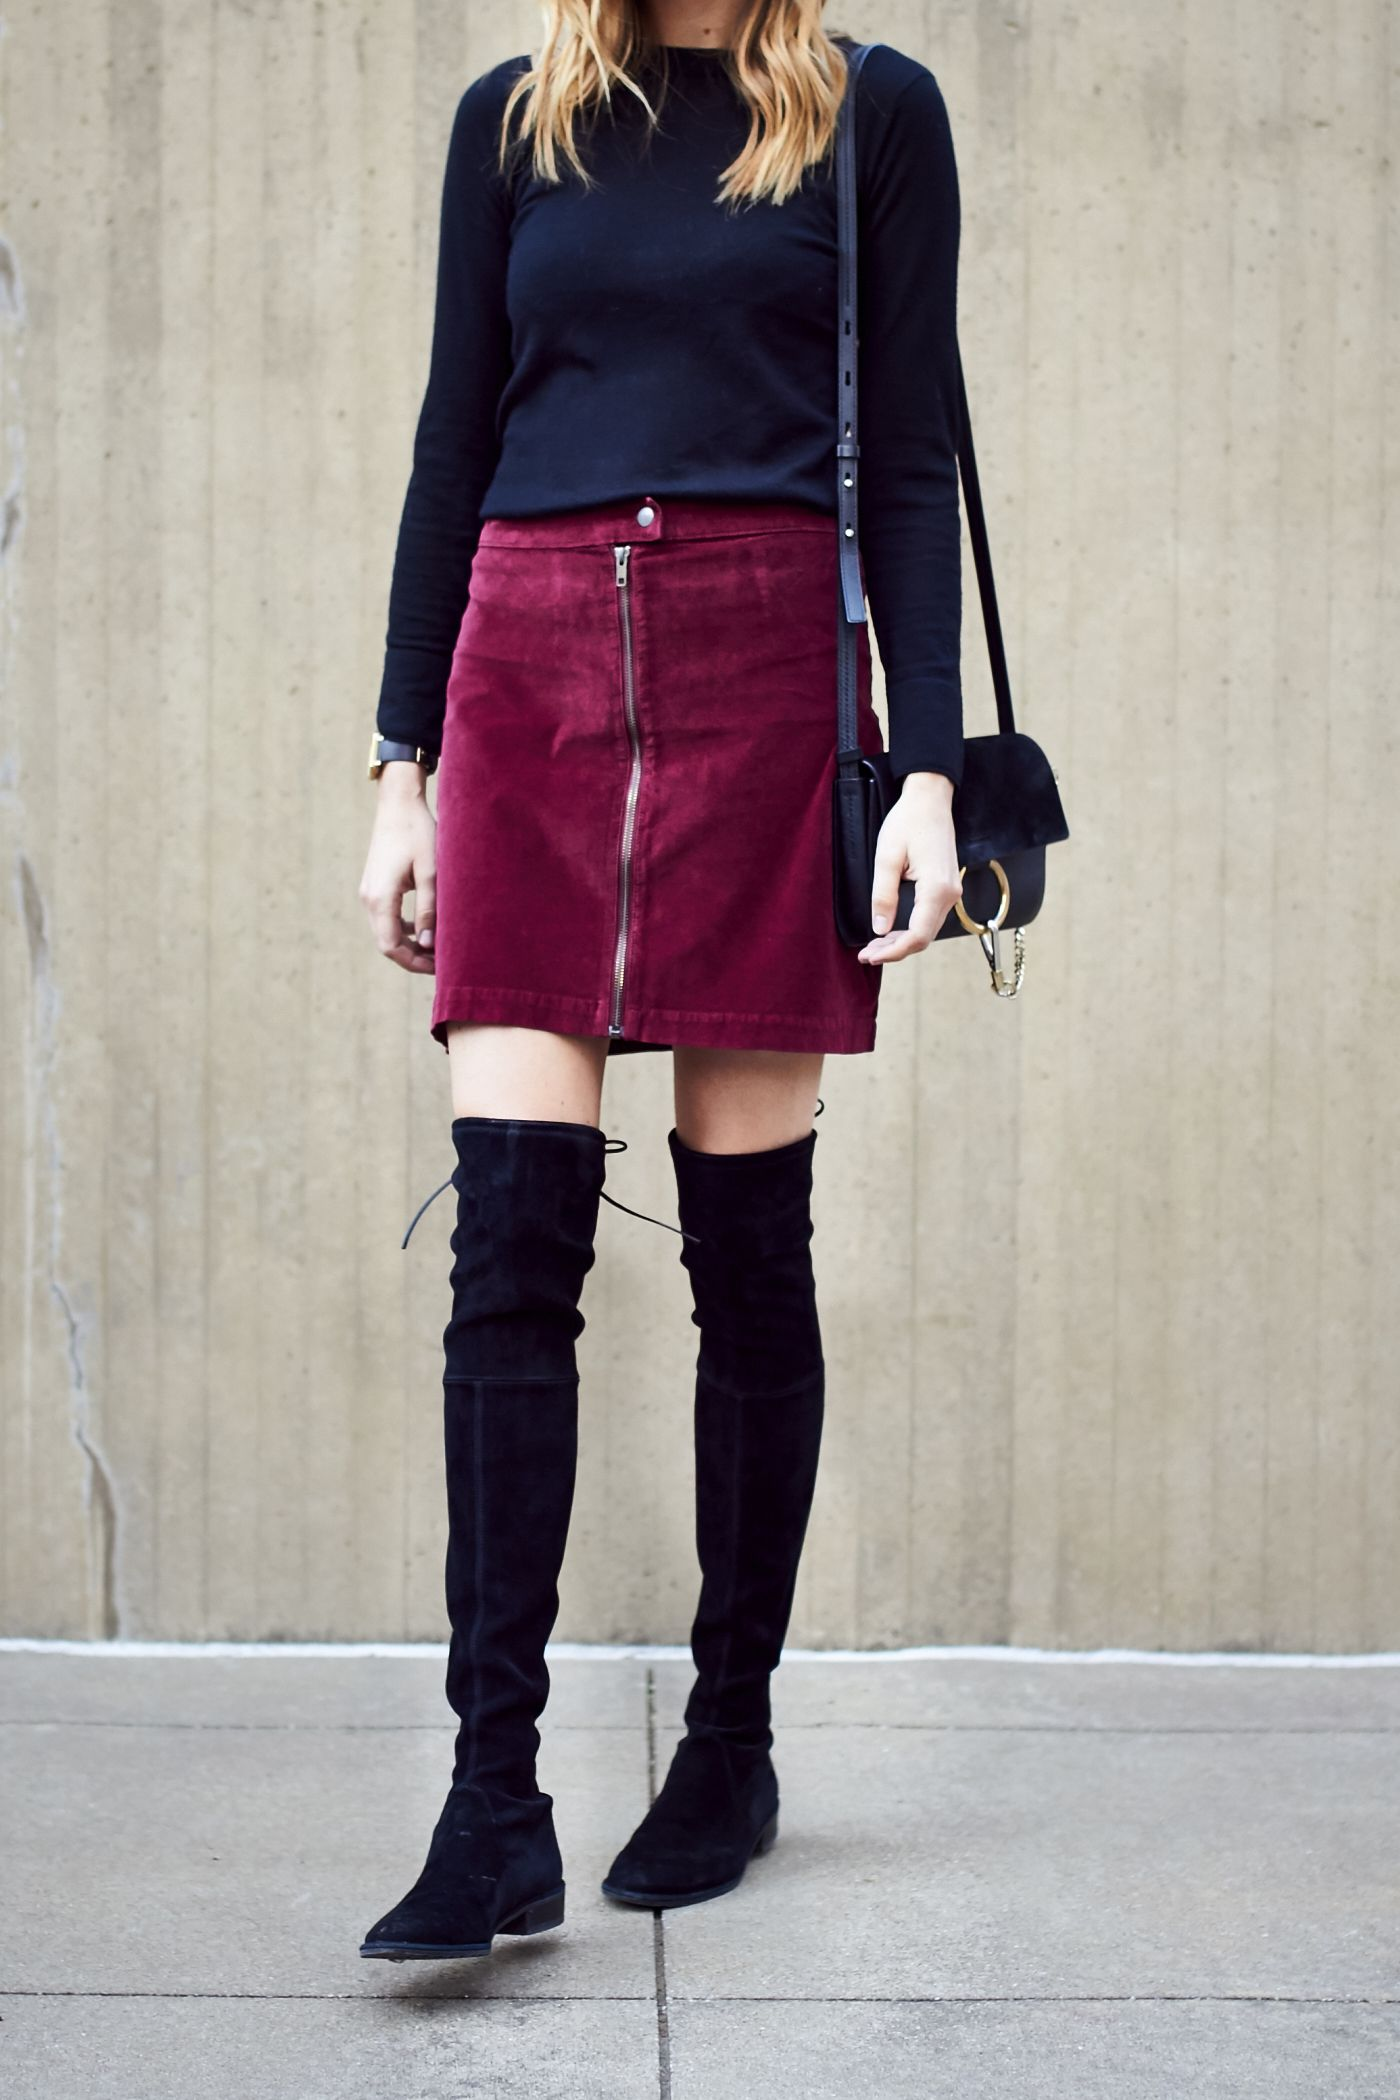 c2adc3c62d6 Fall Outfit